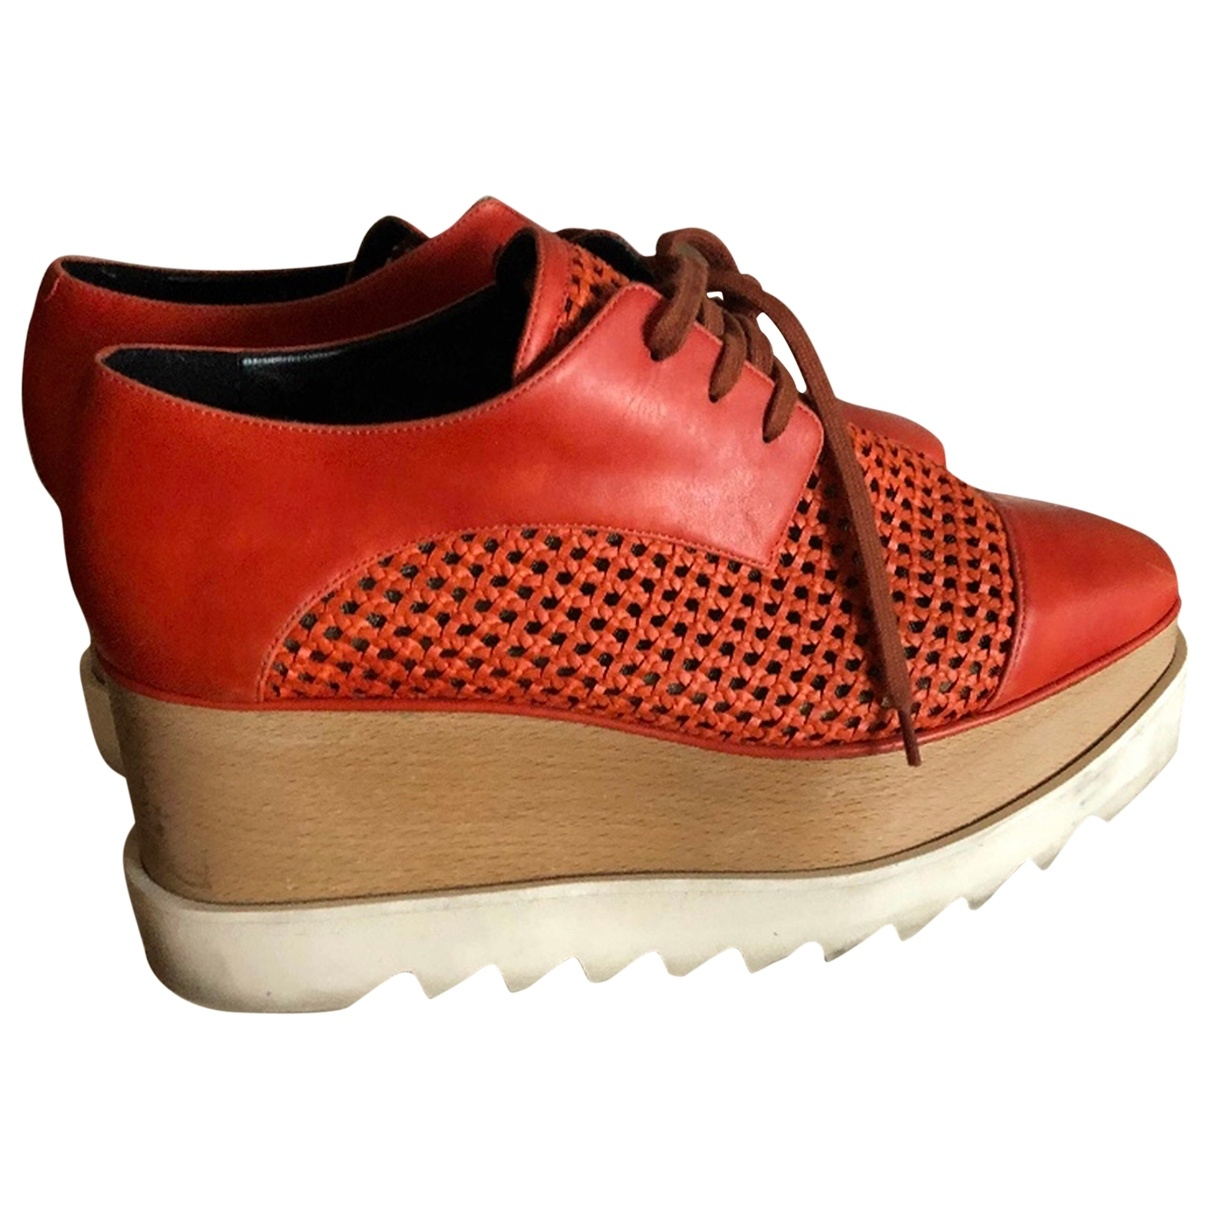 Stella Mccartney - Derbies Elyse pour femme en cuir verni - orange